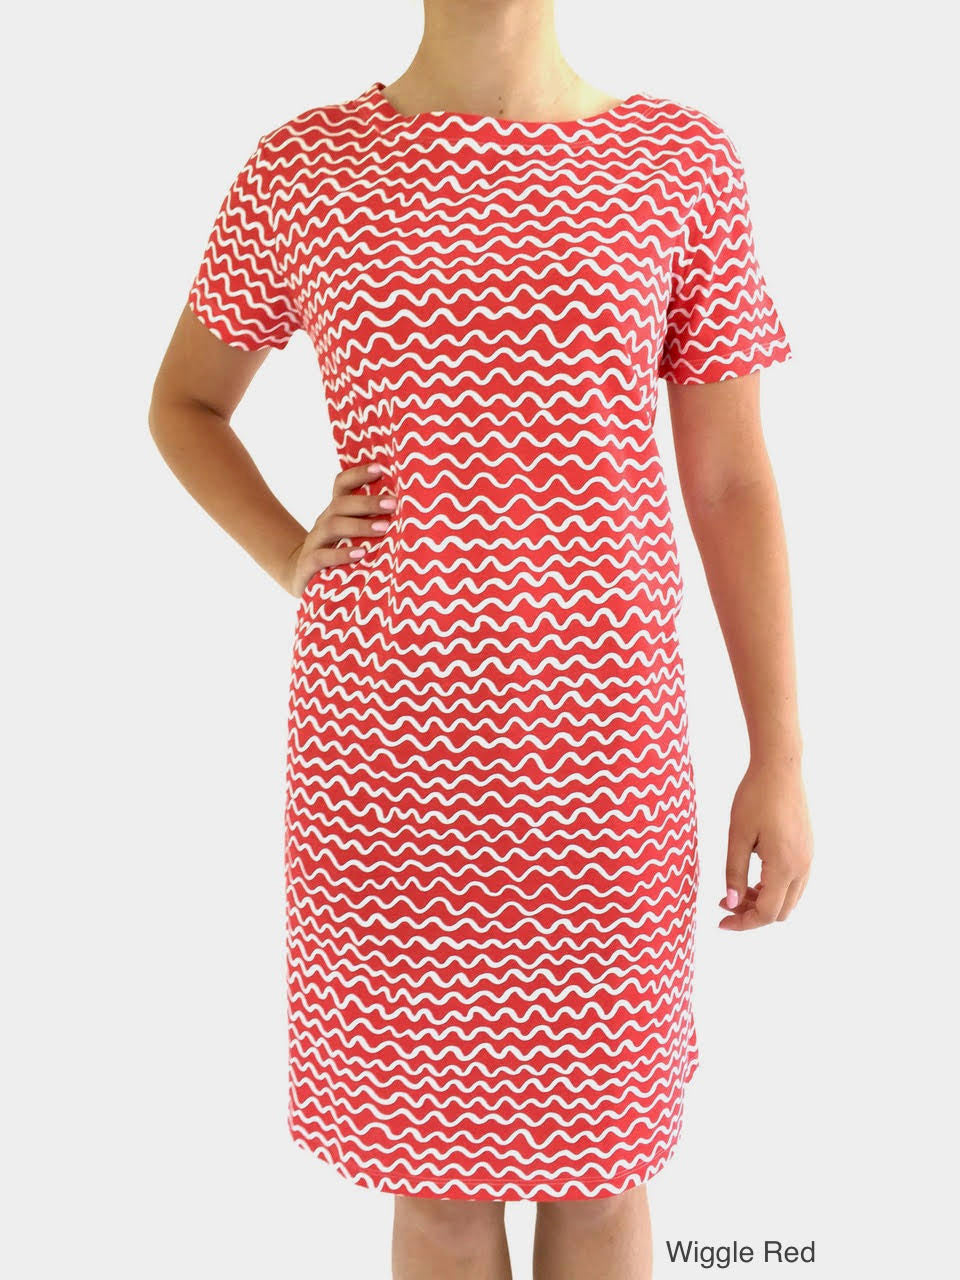 See Design Knit Dress Wiggle Red cotton coverup by Donna Gorman